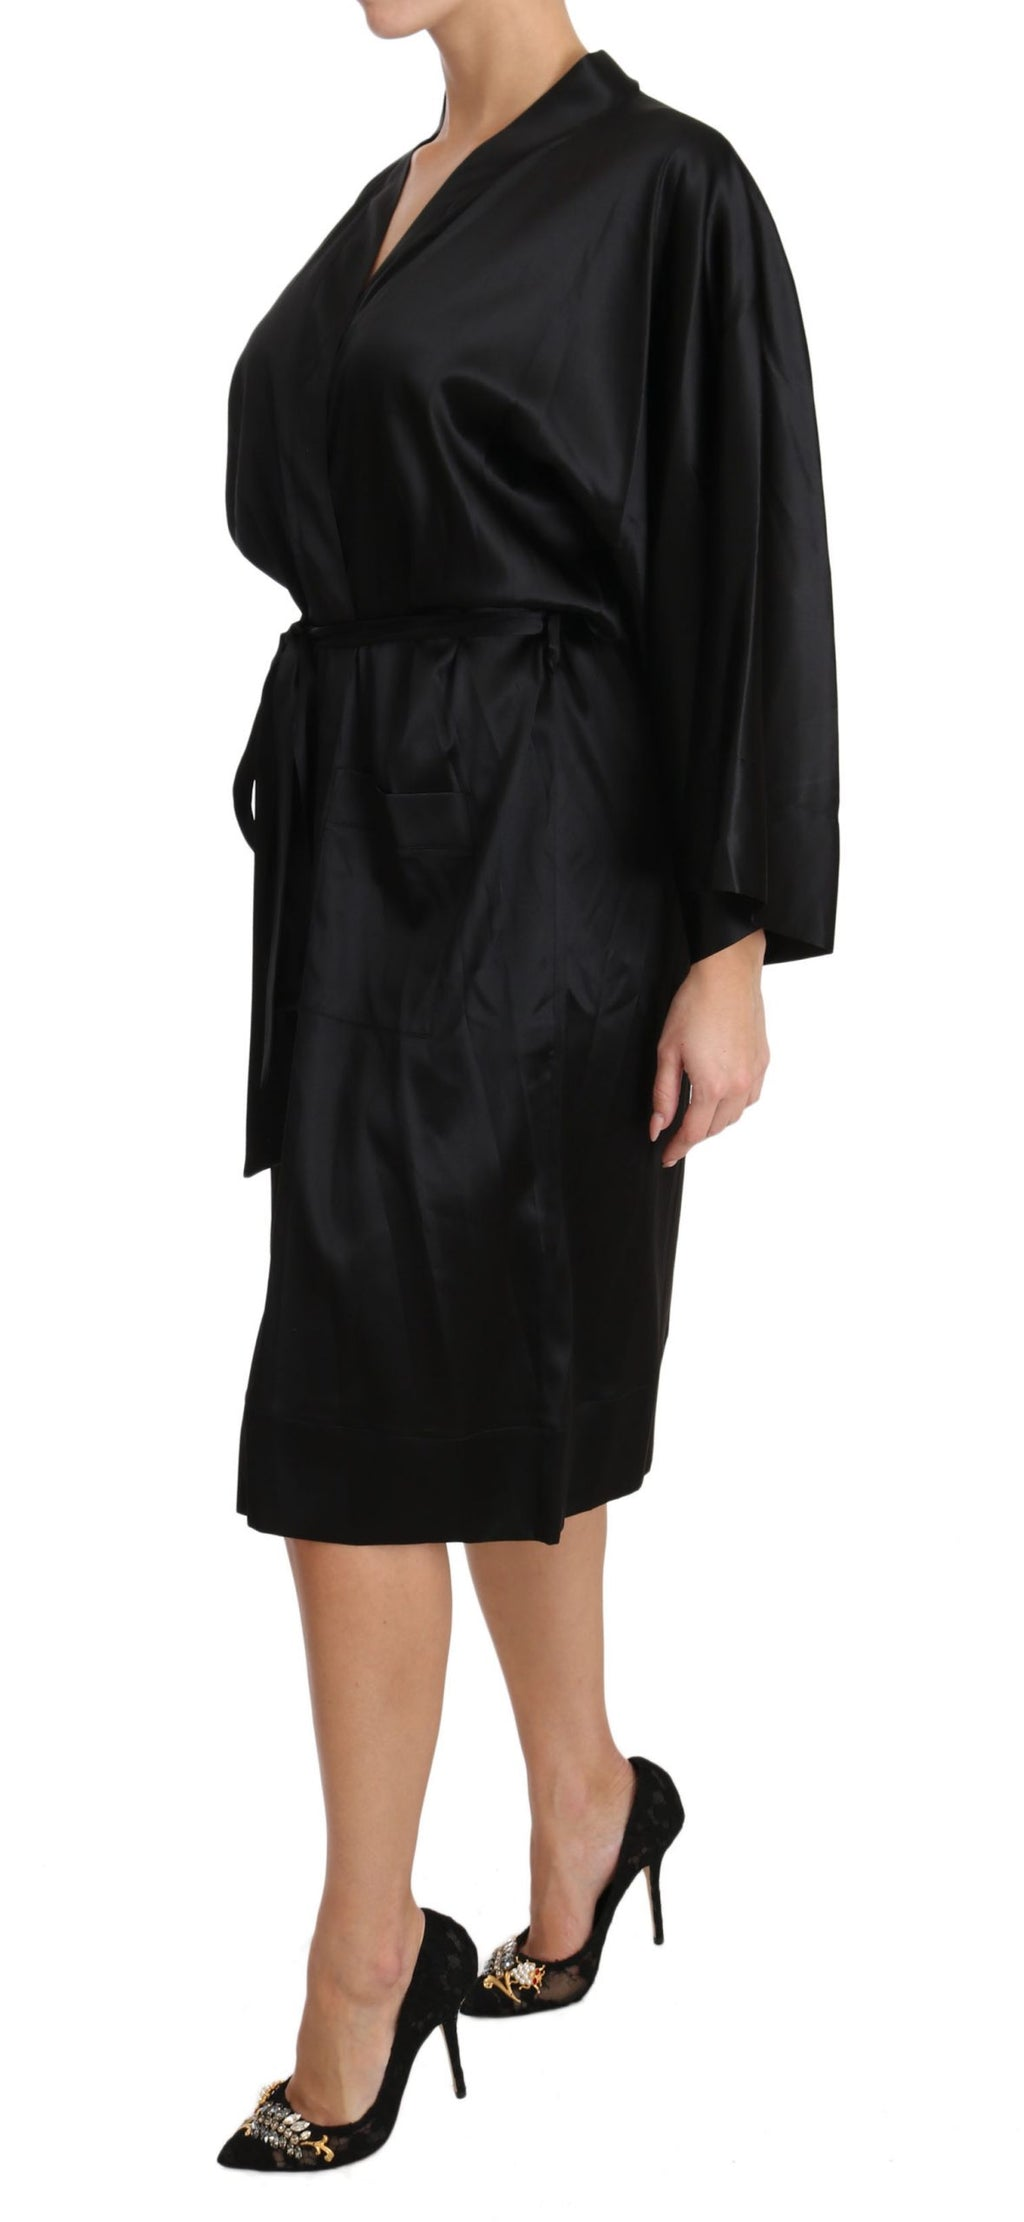 Black Kimono Gown Silk Dressing Sleepwear Robe